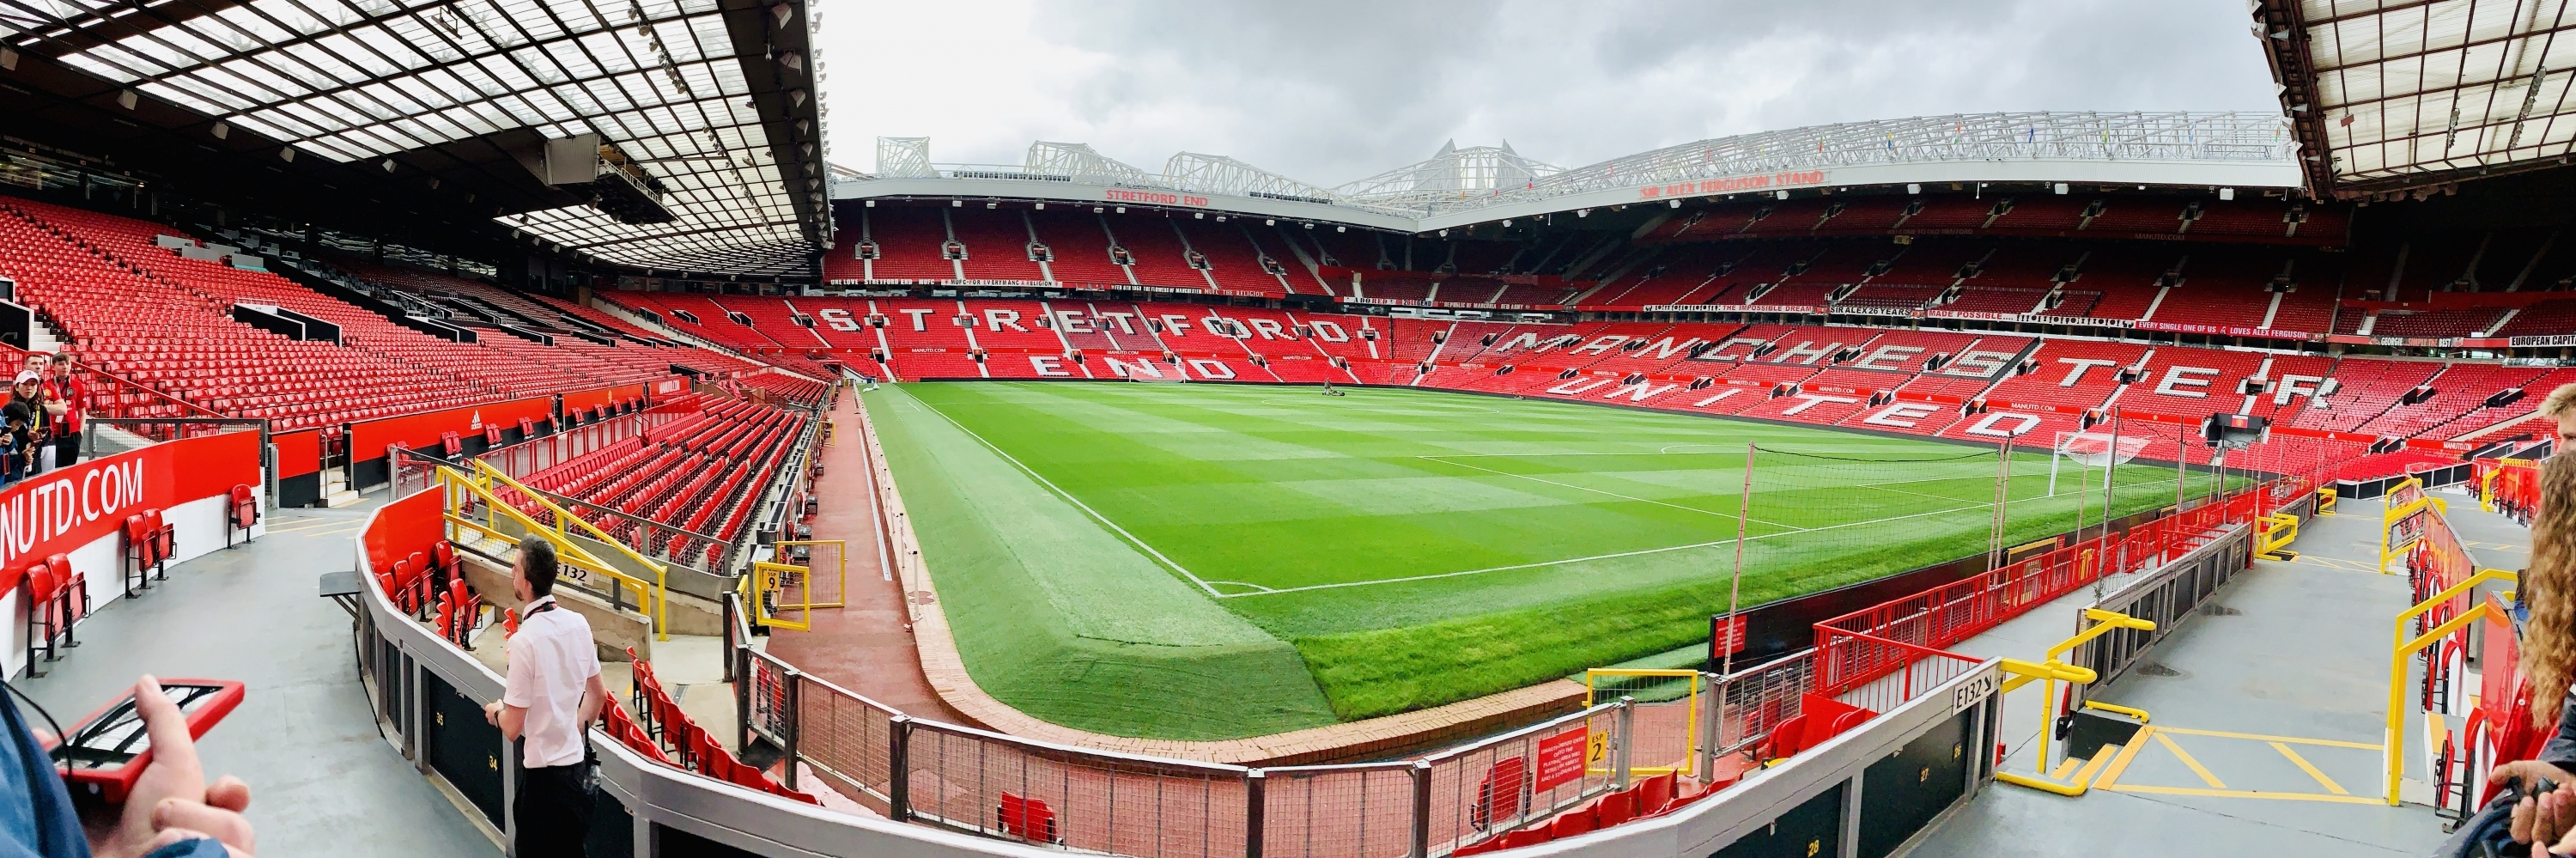 https://gody.vn/blog/thaianhle9517/post/manchester-old-trafford-va-trai-tim-cua-fan-mu-4511